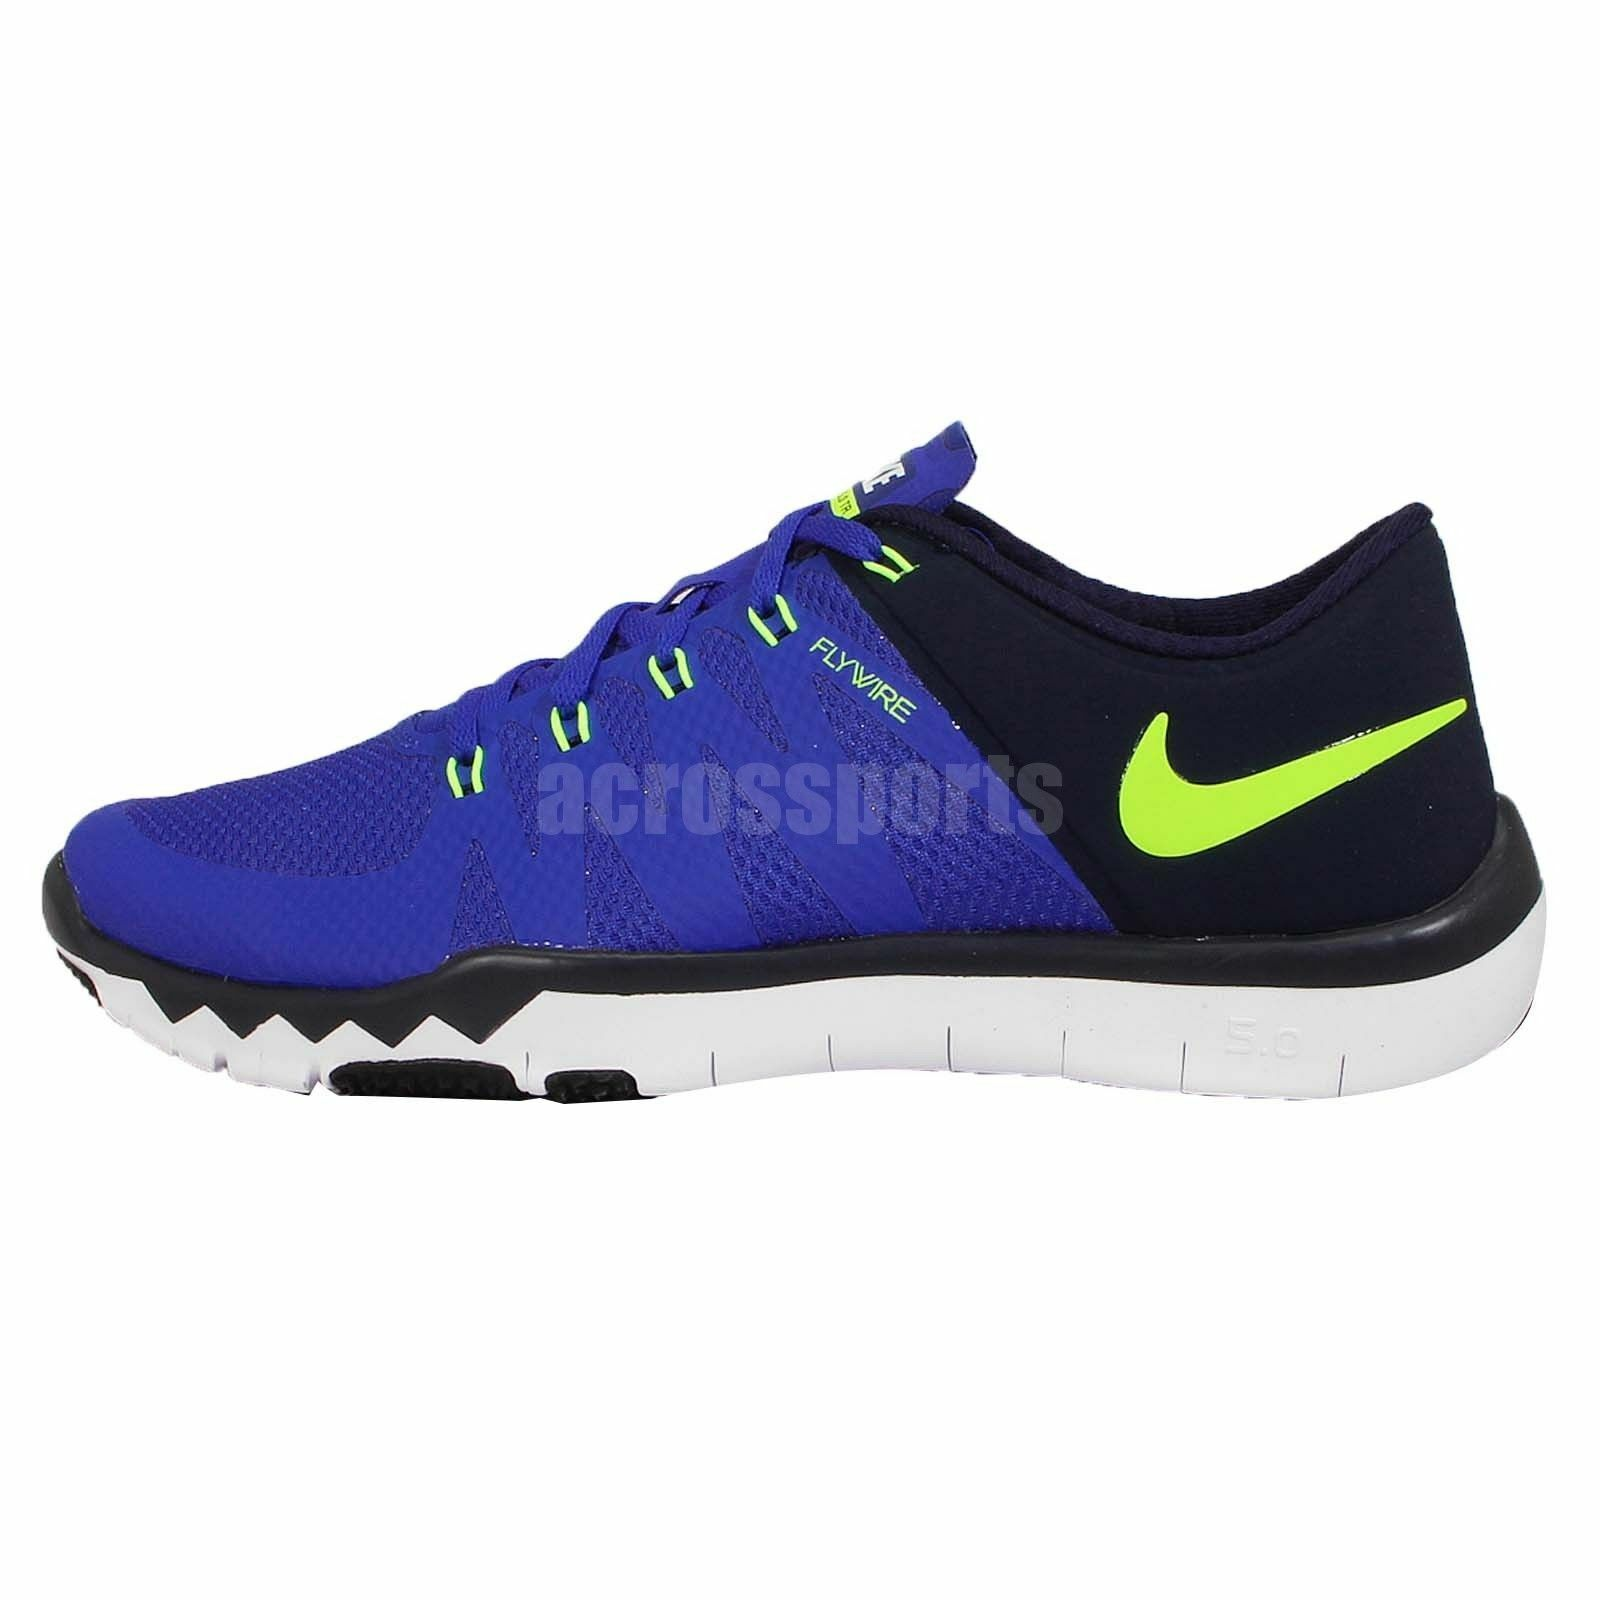 New NIKE Mens 10.5 FREE TRAINER 5.0 V6 719922 470 ROYAL BLUE RUNNING SHOES Price reduction